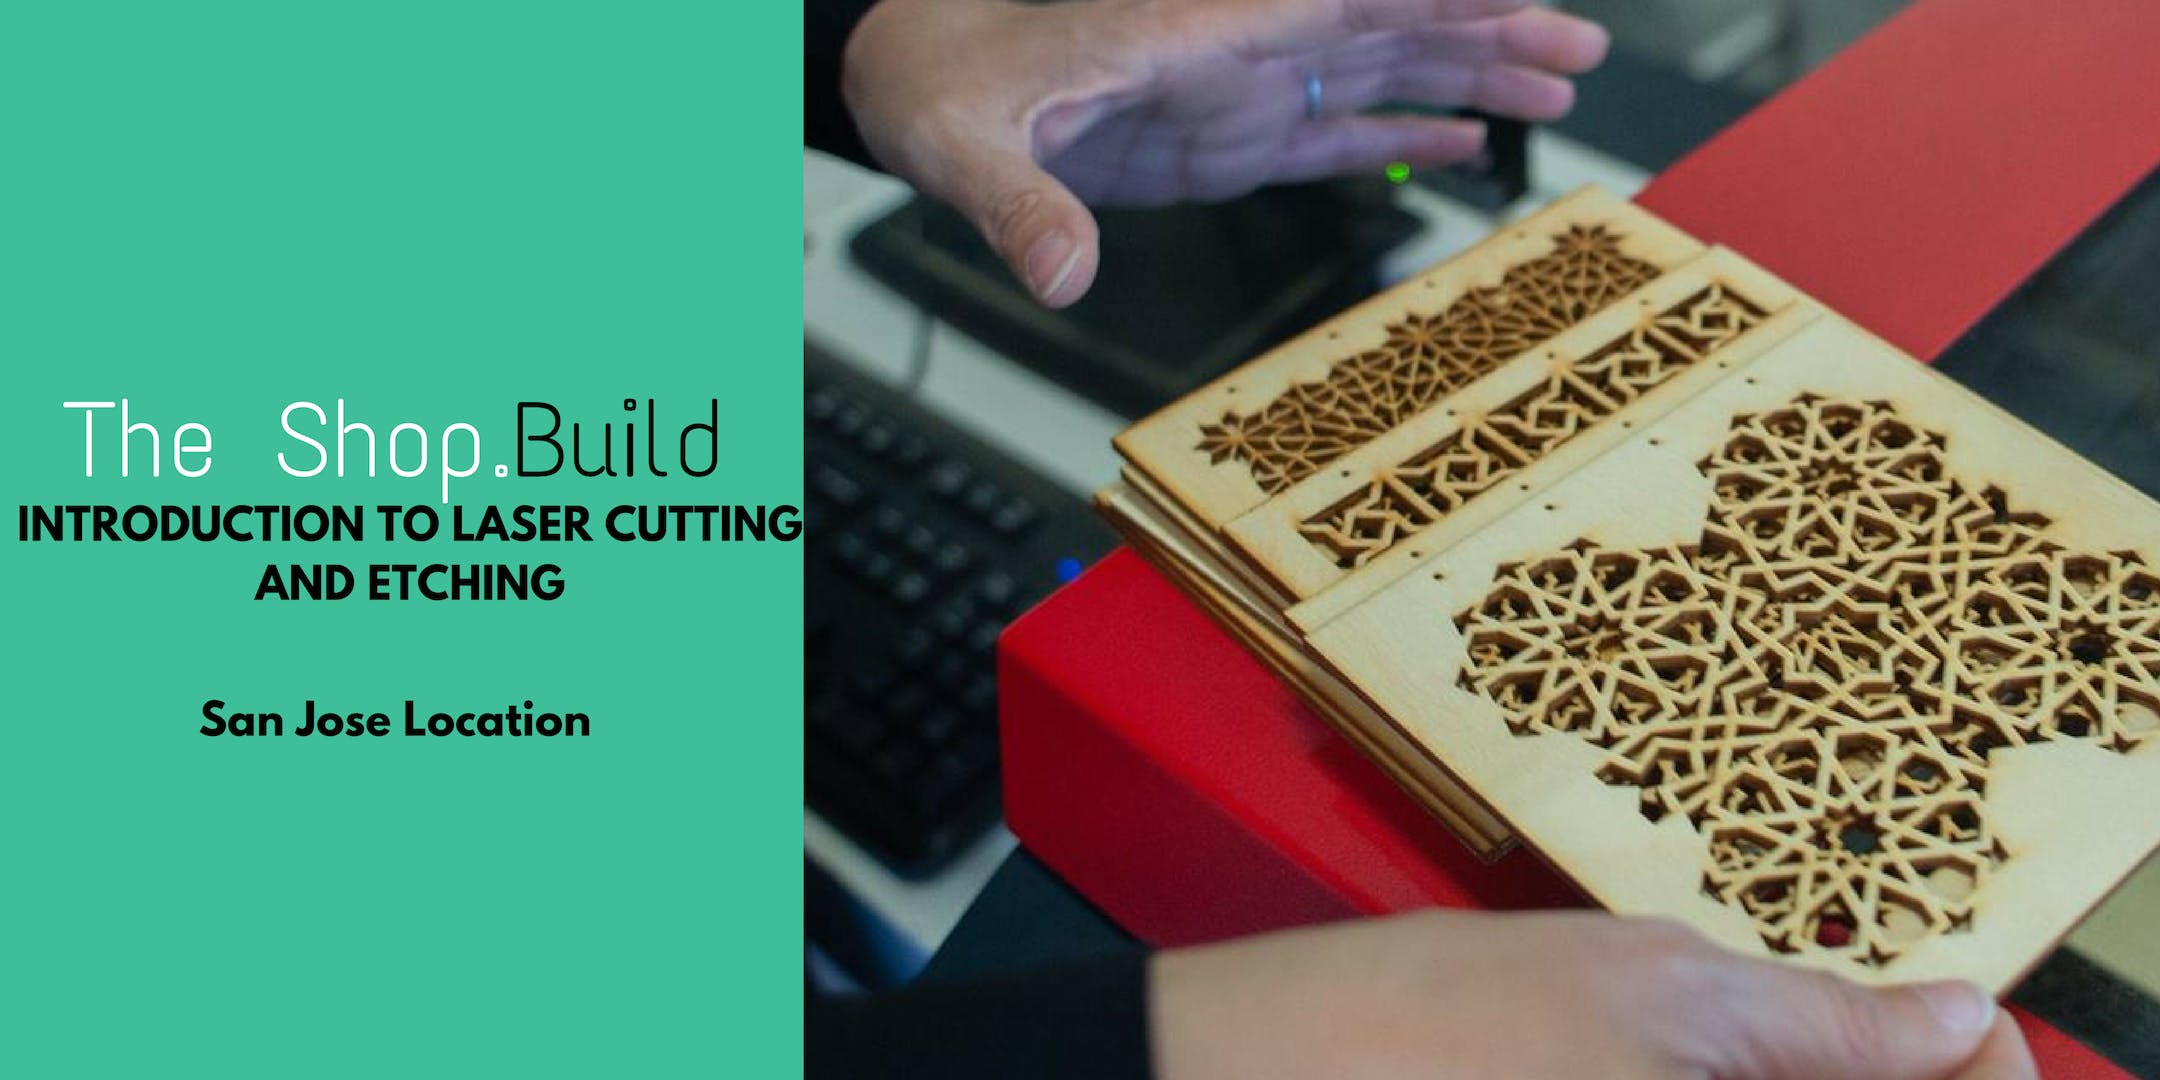 INTRODUCTION TO LASER CUTTING AND ETCHING